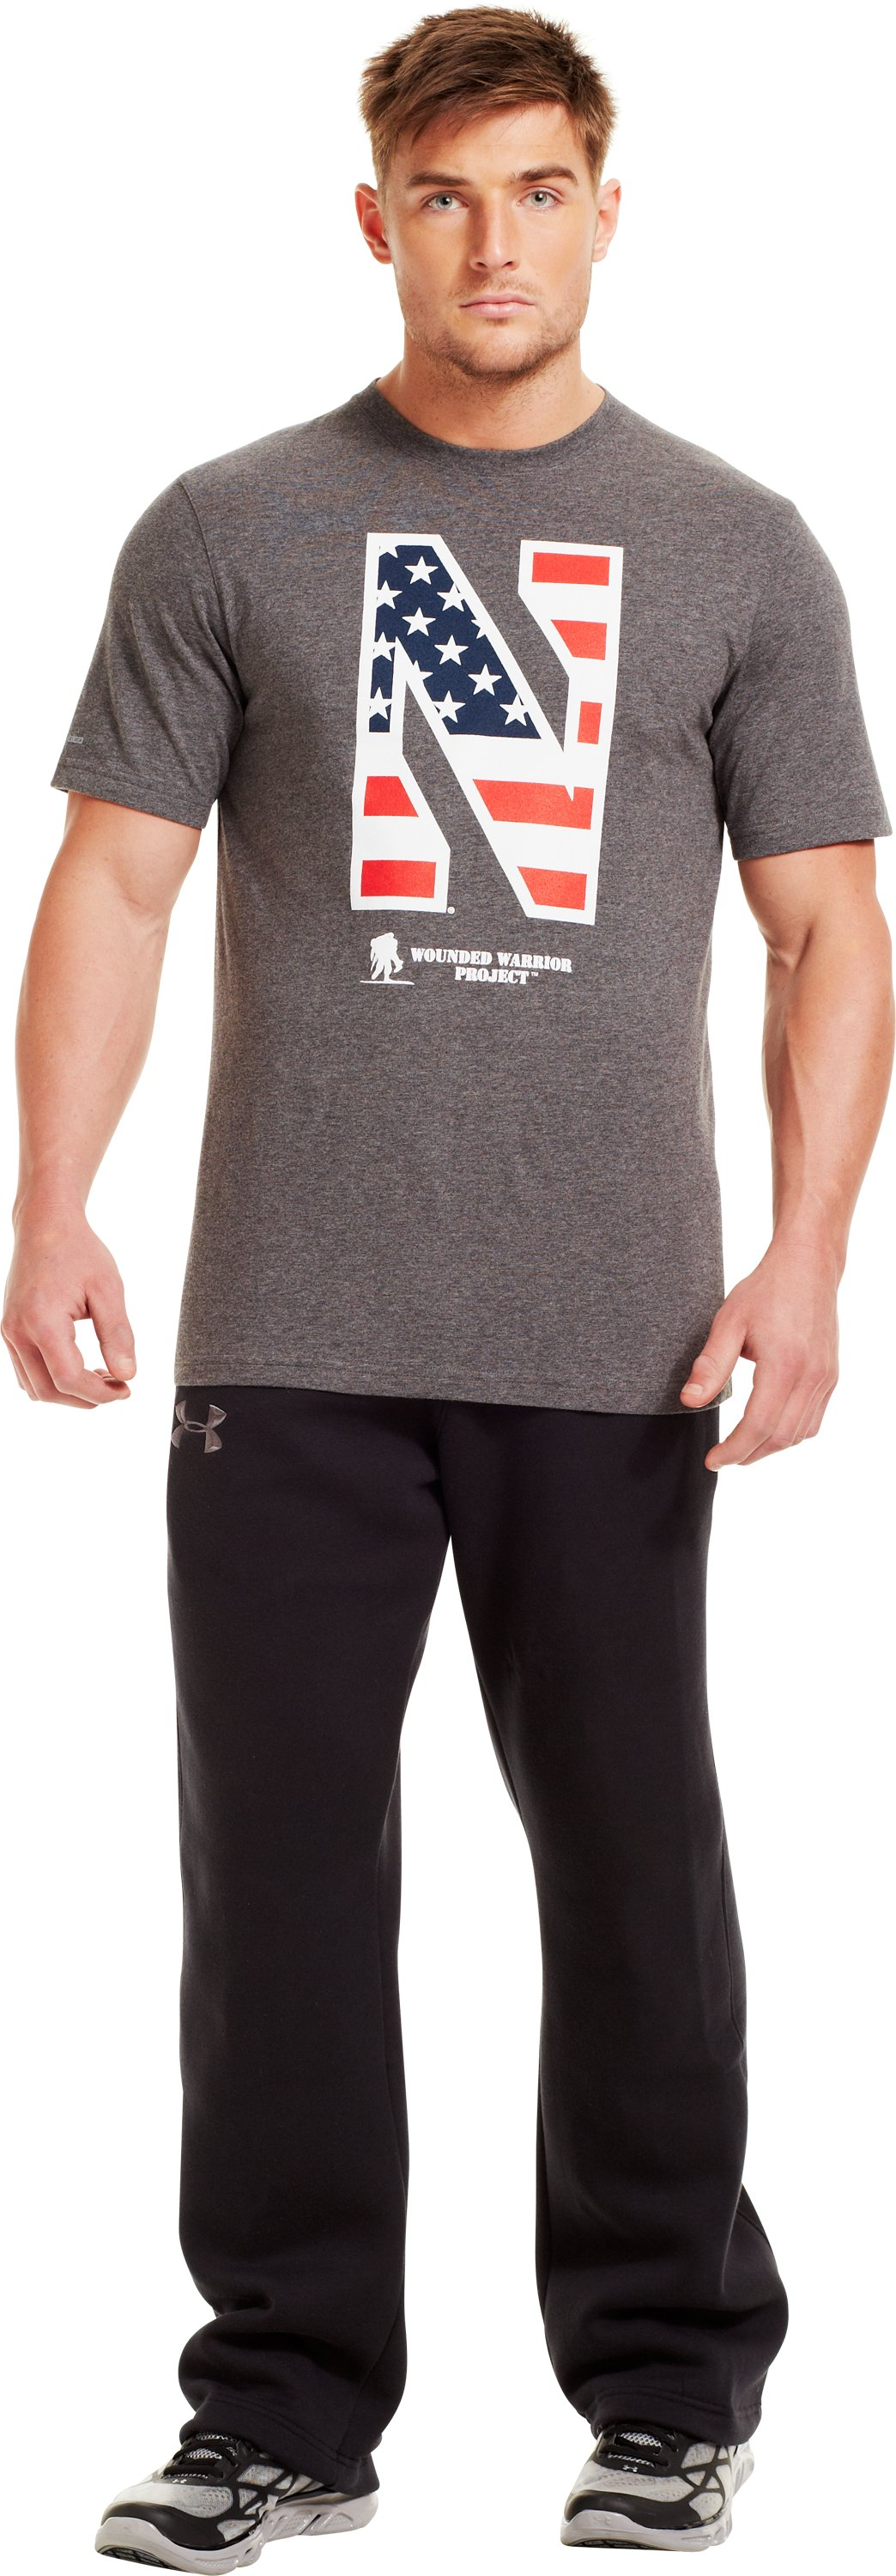 Men's Northwestern Wounded Warrior Project T-Shirt, Carbon Heather